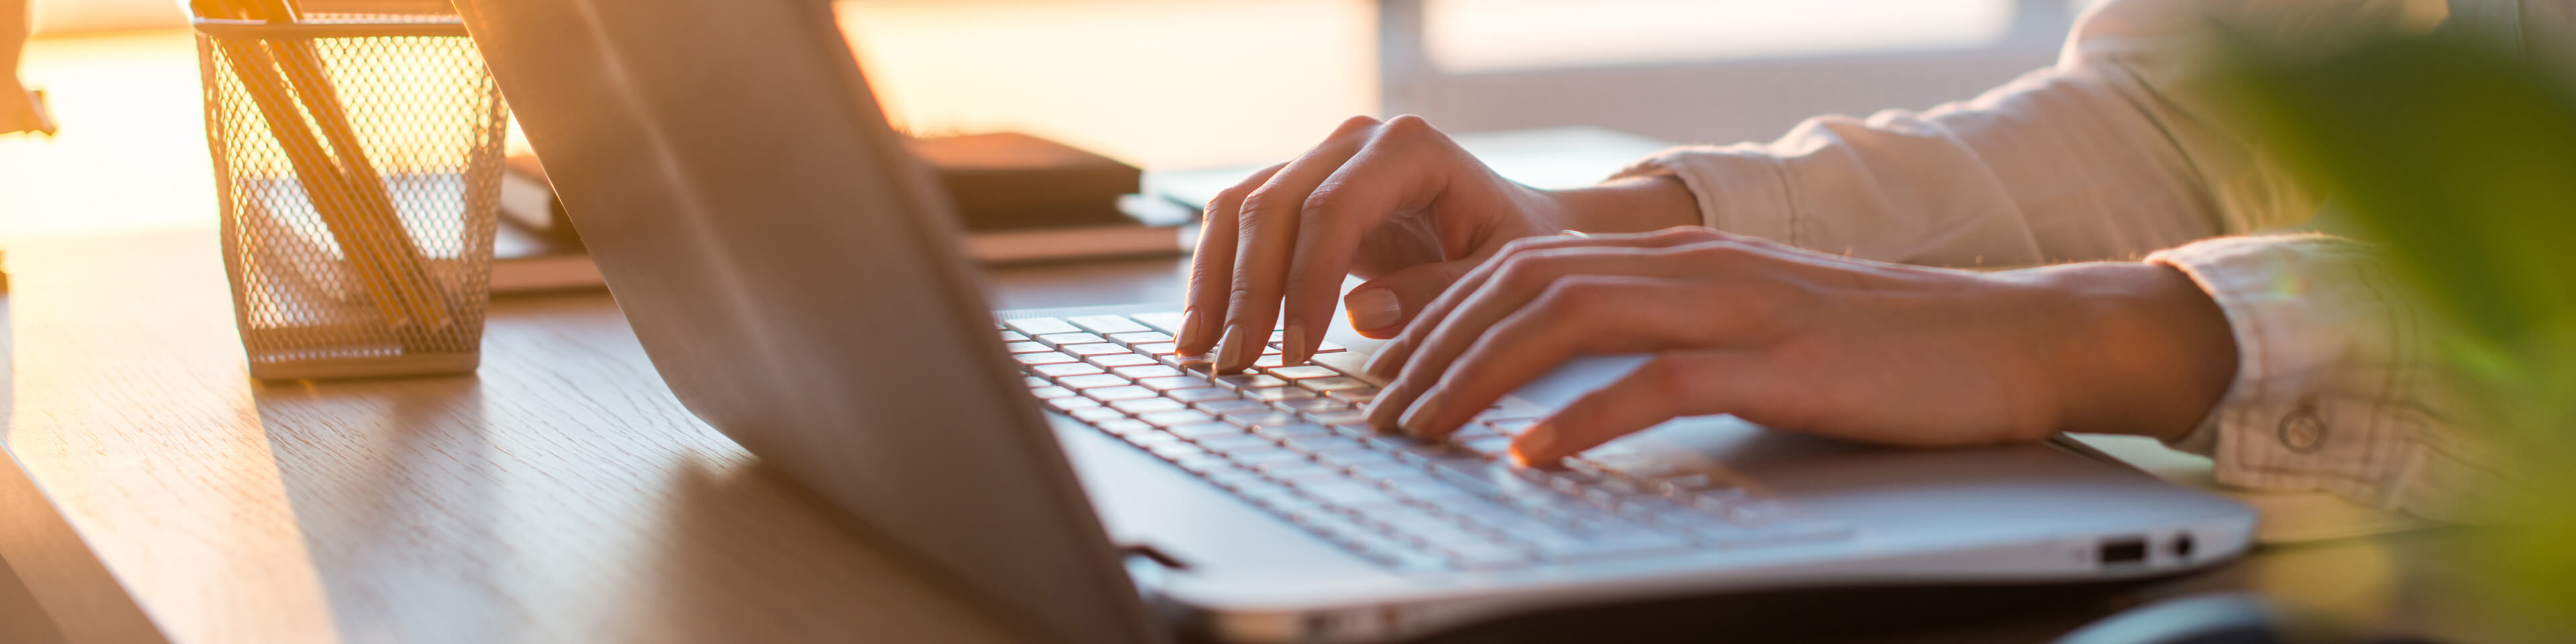 woman typing on a laptop - close-up of hands